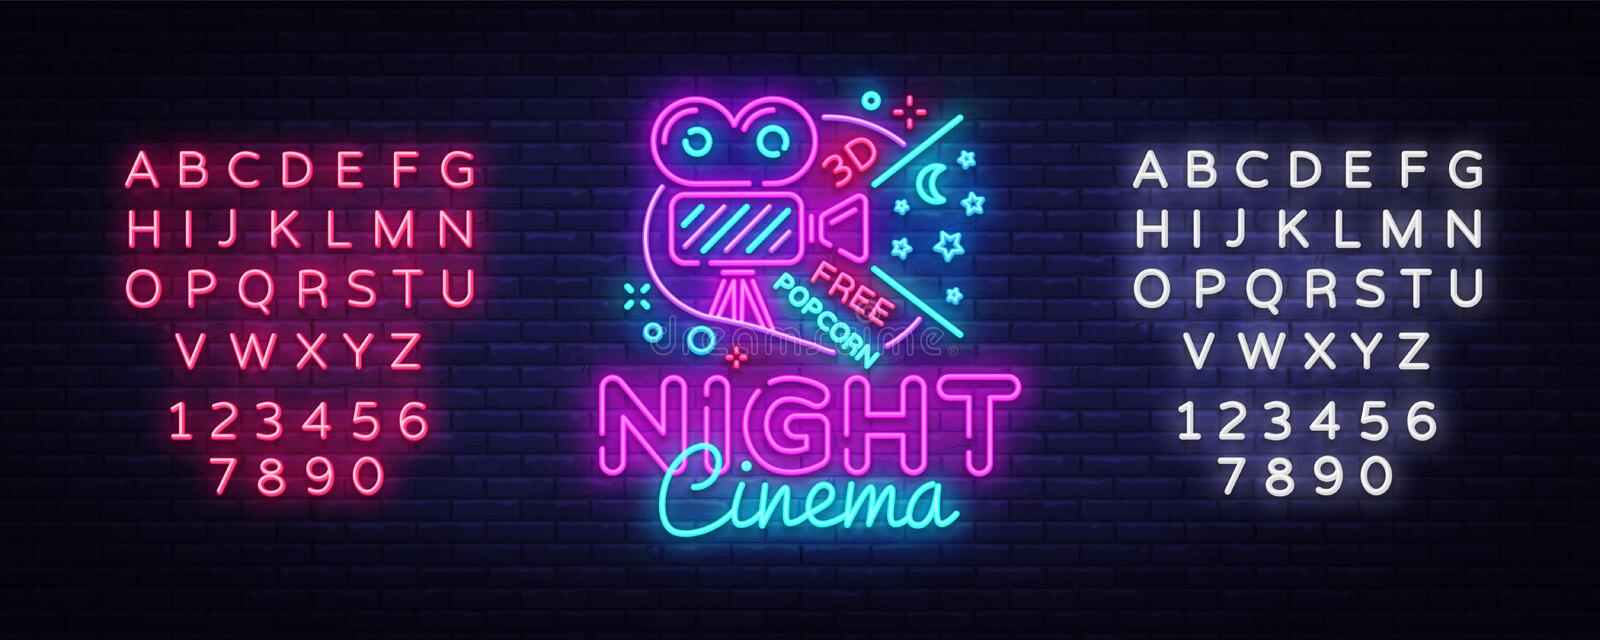 Cinema Night neon sign vector. Movie Night Design template neon sign, cinema light banner, neon signboard, nightly royalty free illustration